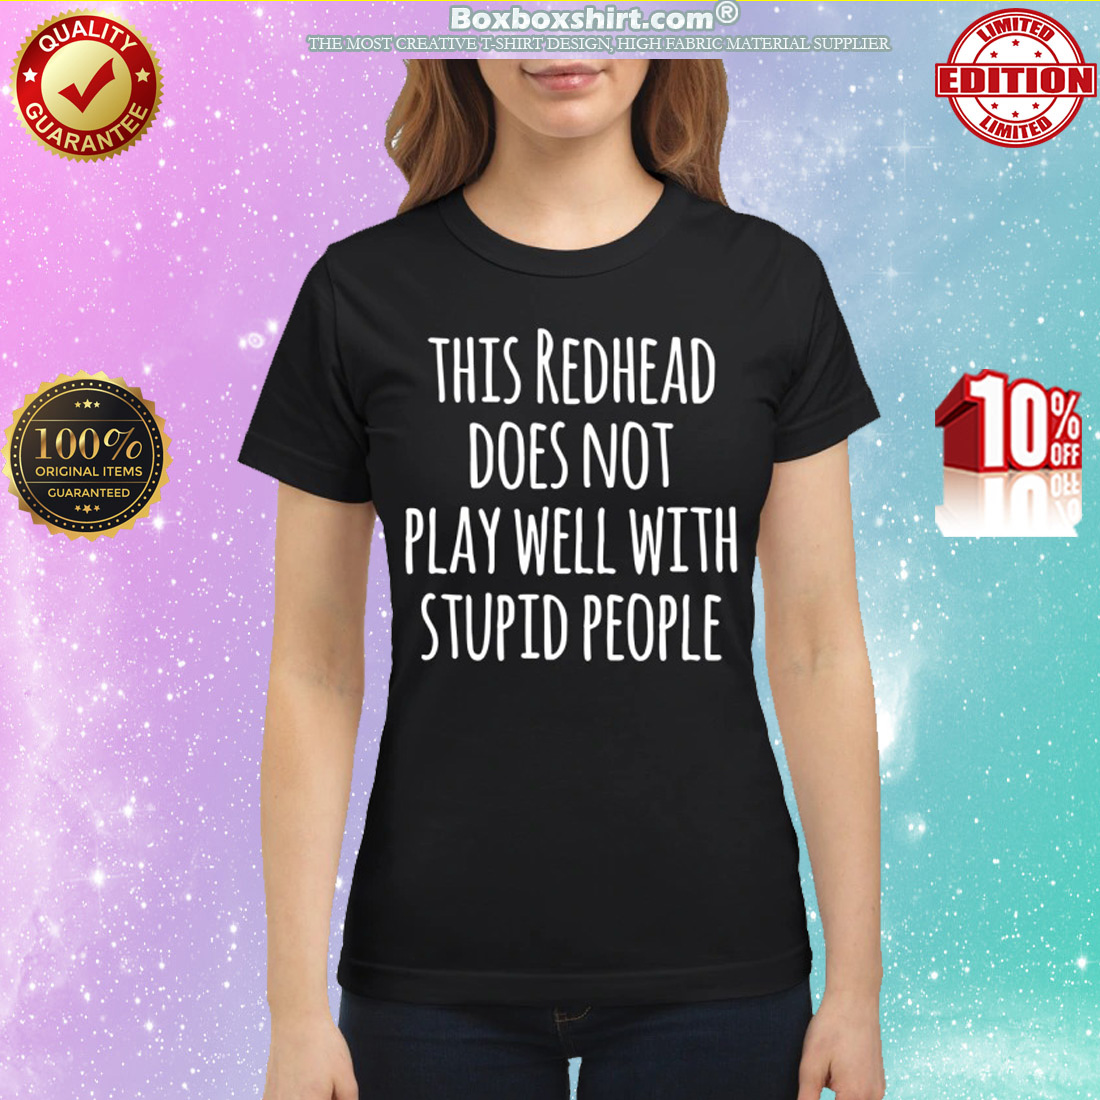 This redhead does not play well with stupid people classic shirt